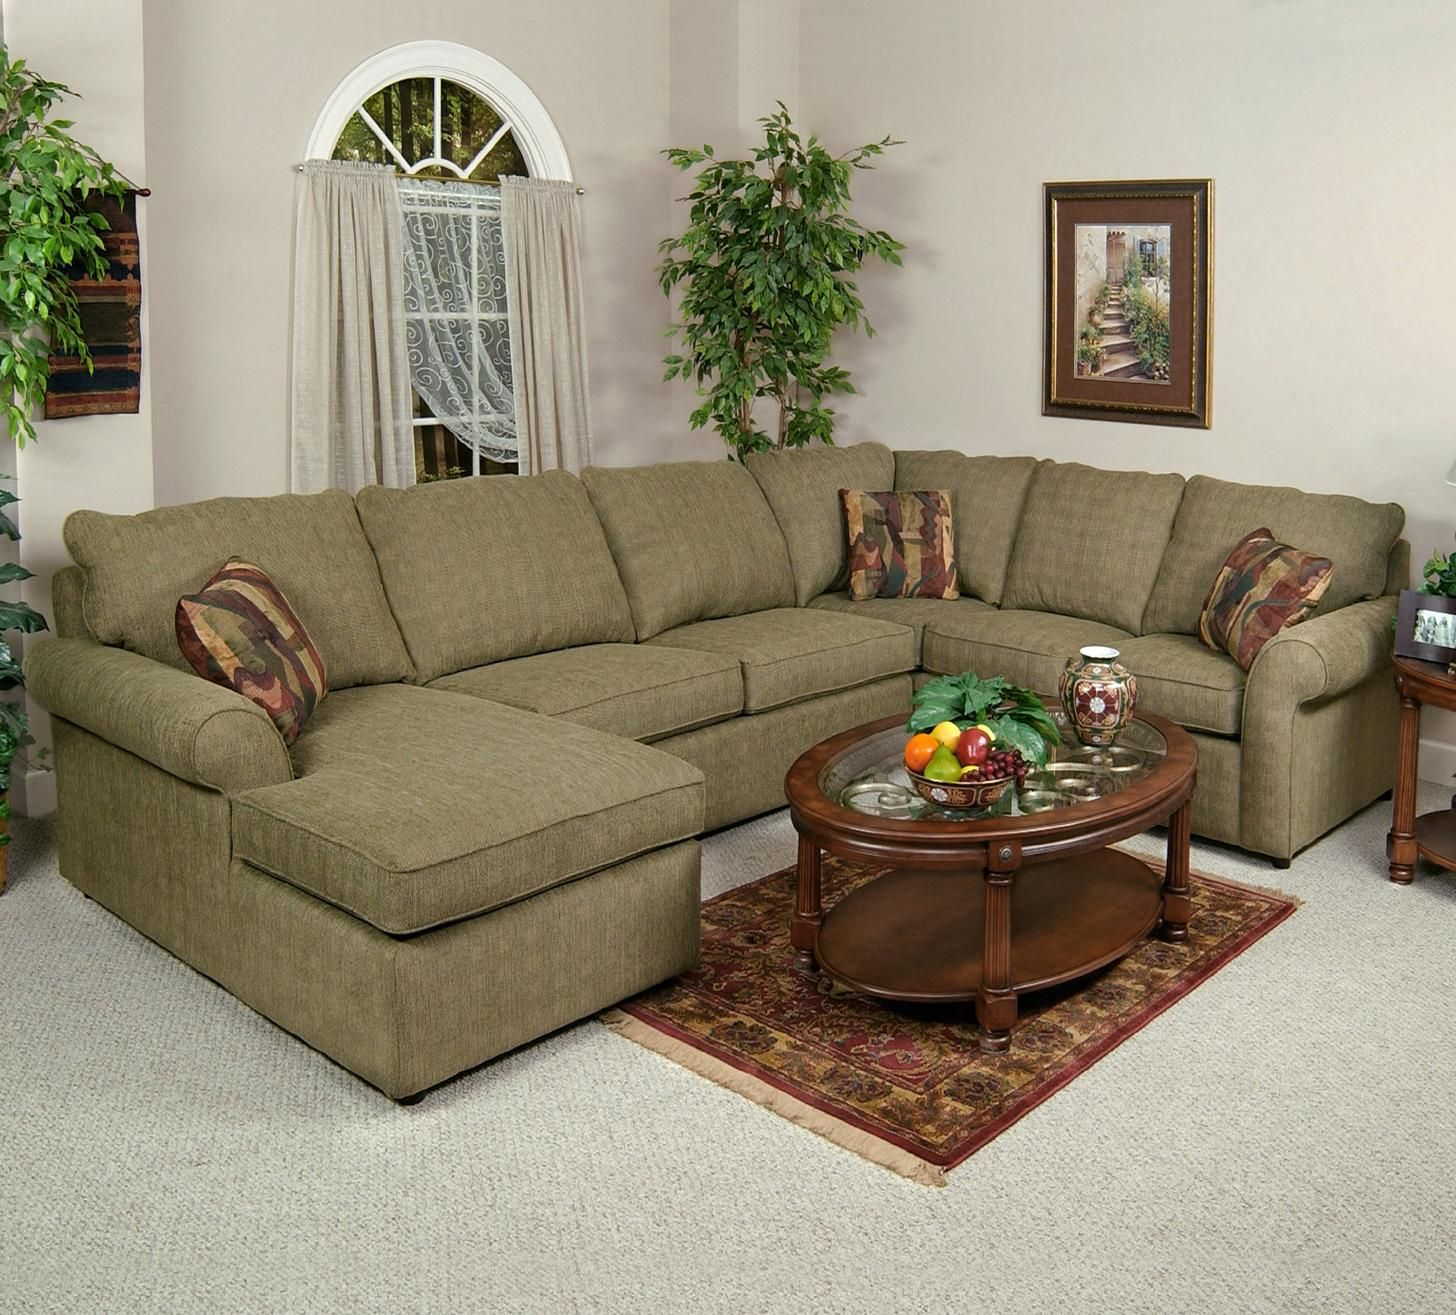 Marvelous Miller Brothers Furniture Is An England Furniture Gallary With A Complete  Line Of Fabrics And Design